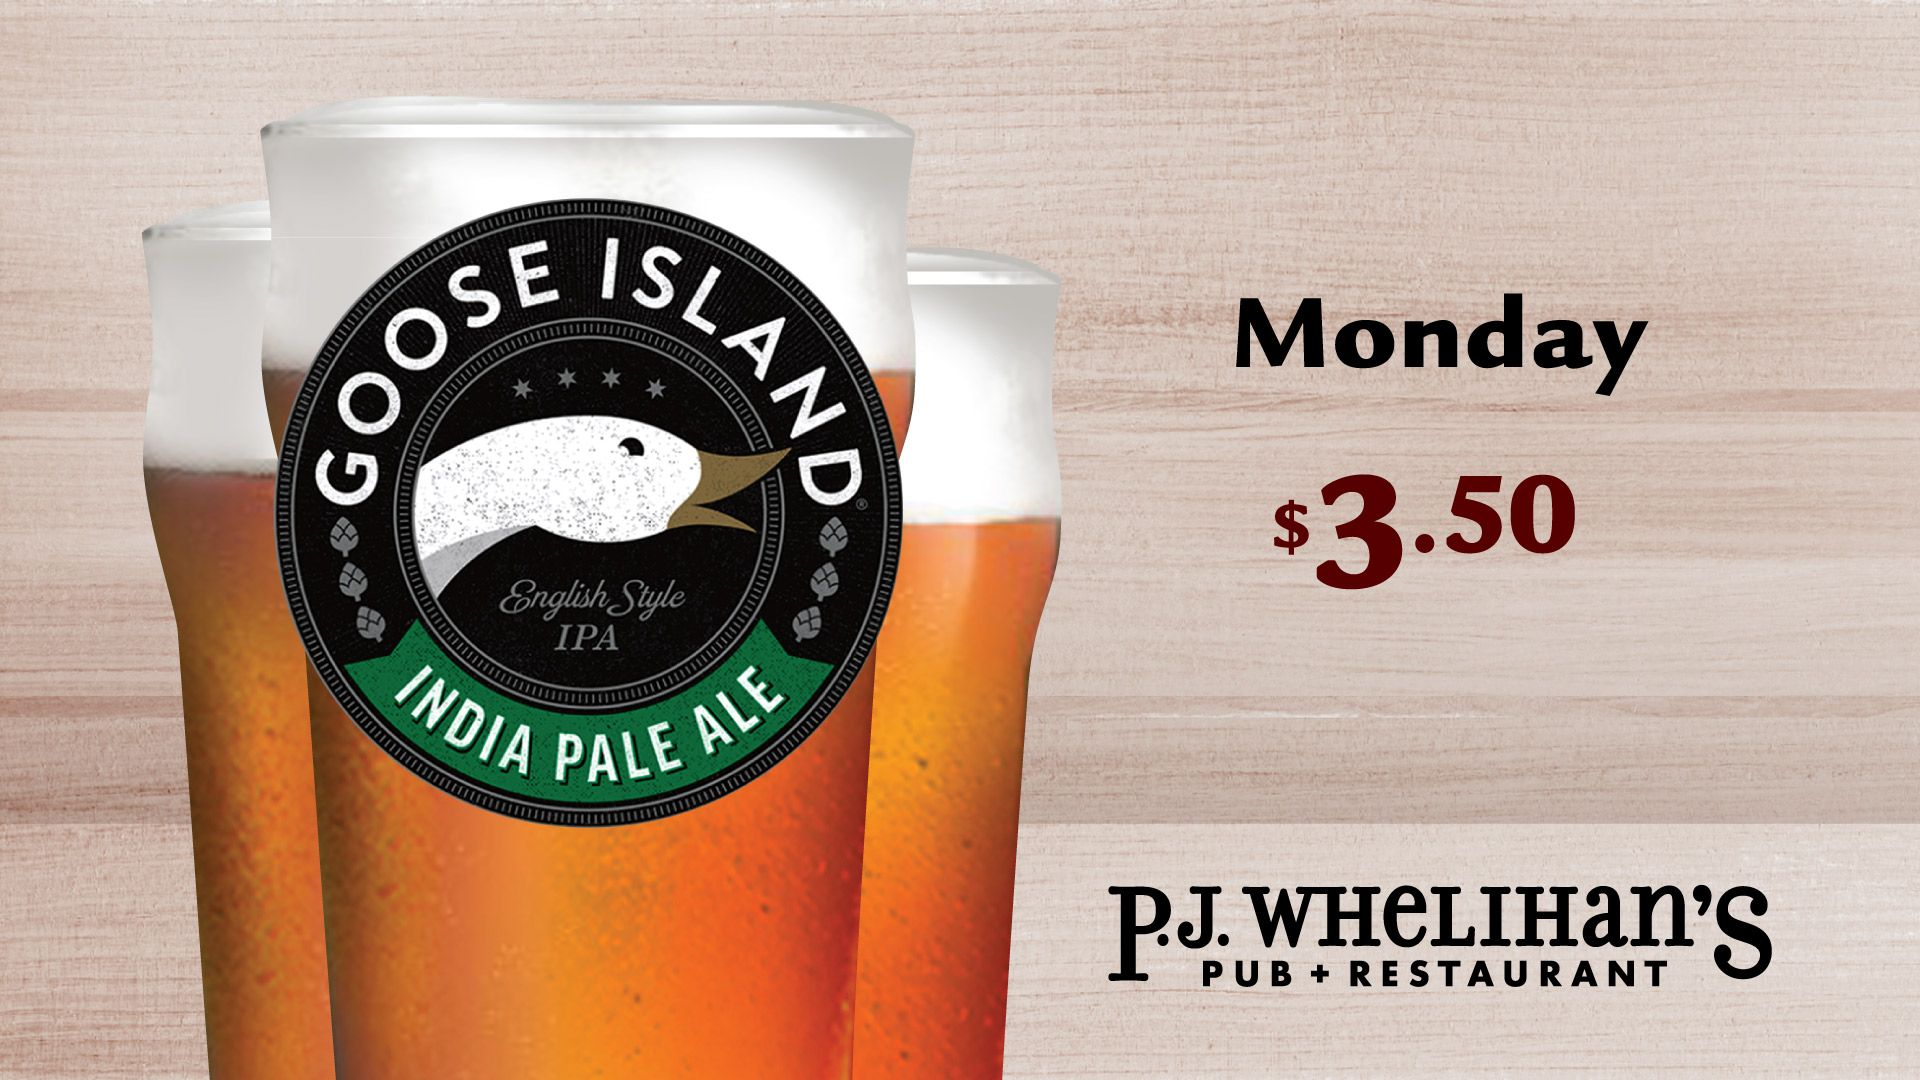 Every Monday, Enjoy $3.50 Goose Island IPA at #PJsPub (times vary)